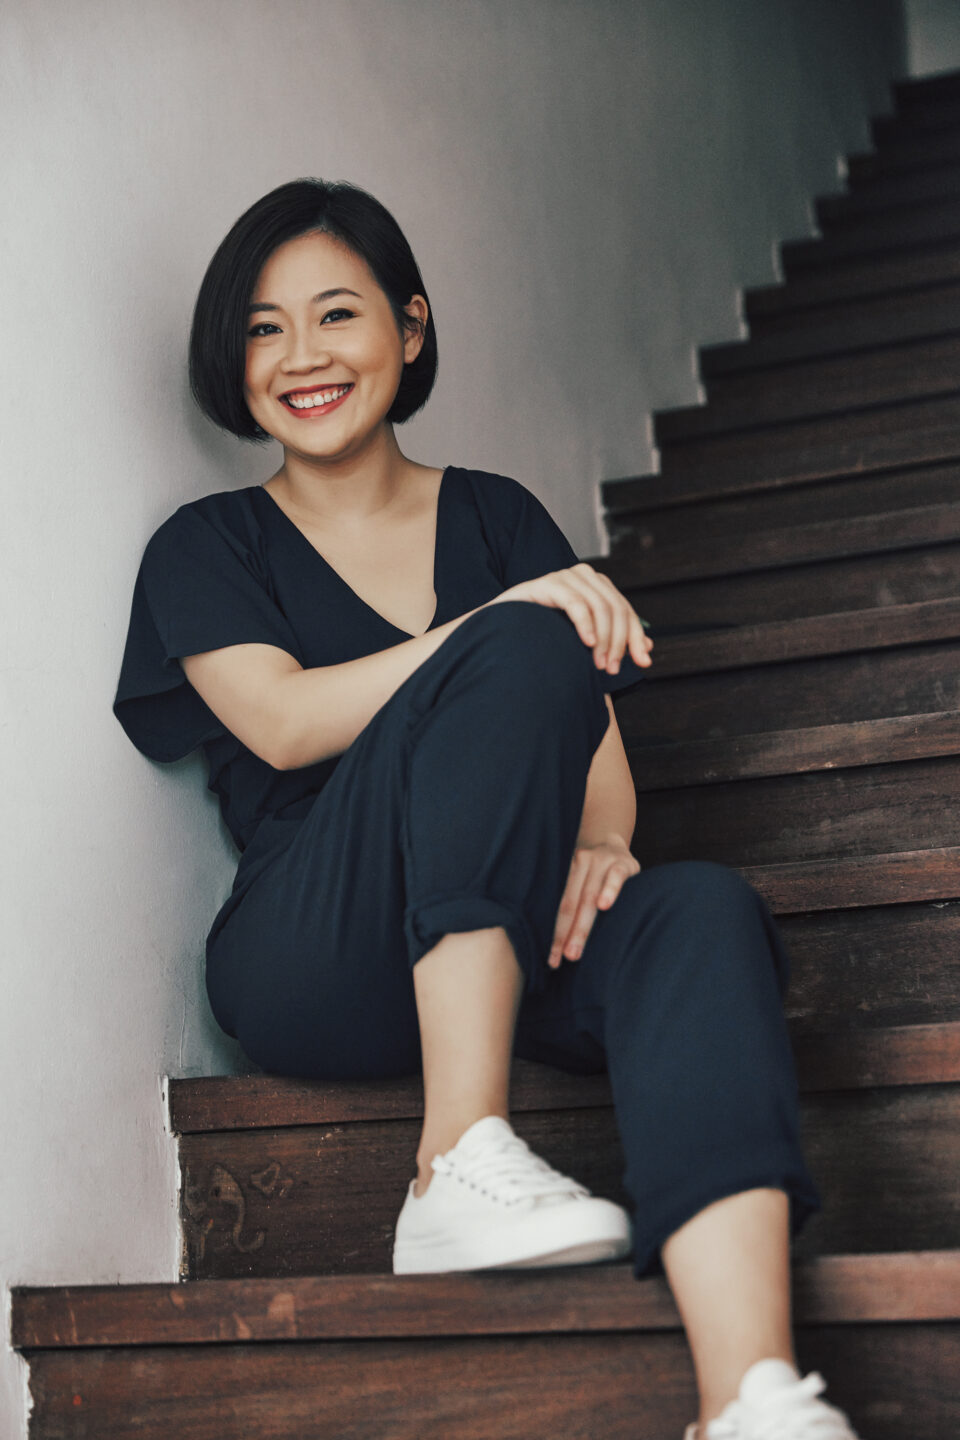 Vivian Lim: I Learnt To Re-Evaluate My Role And Purpose As A Community Builder